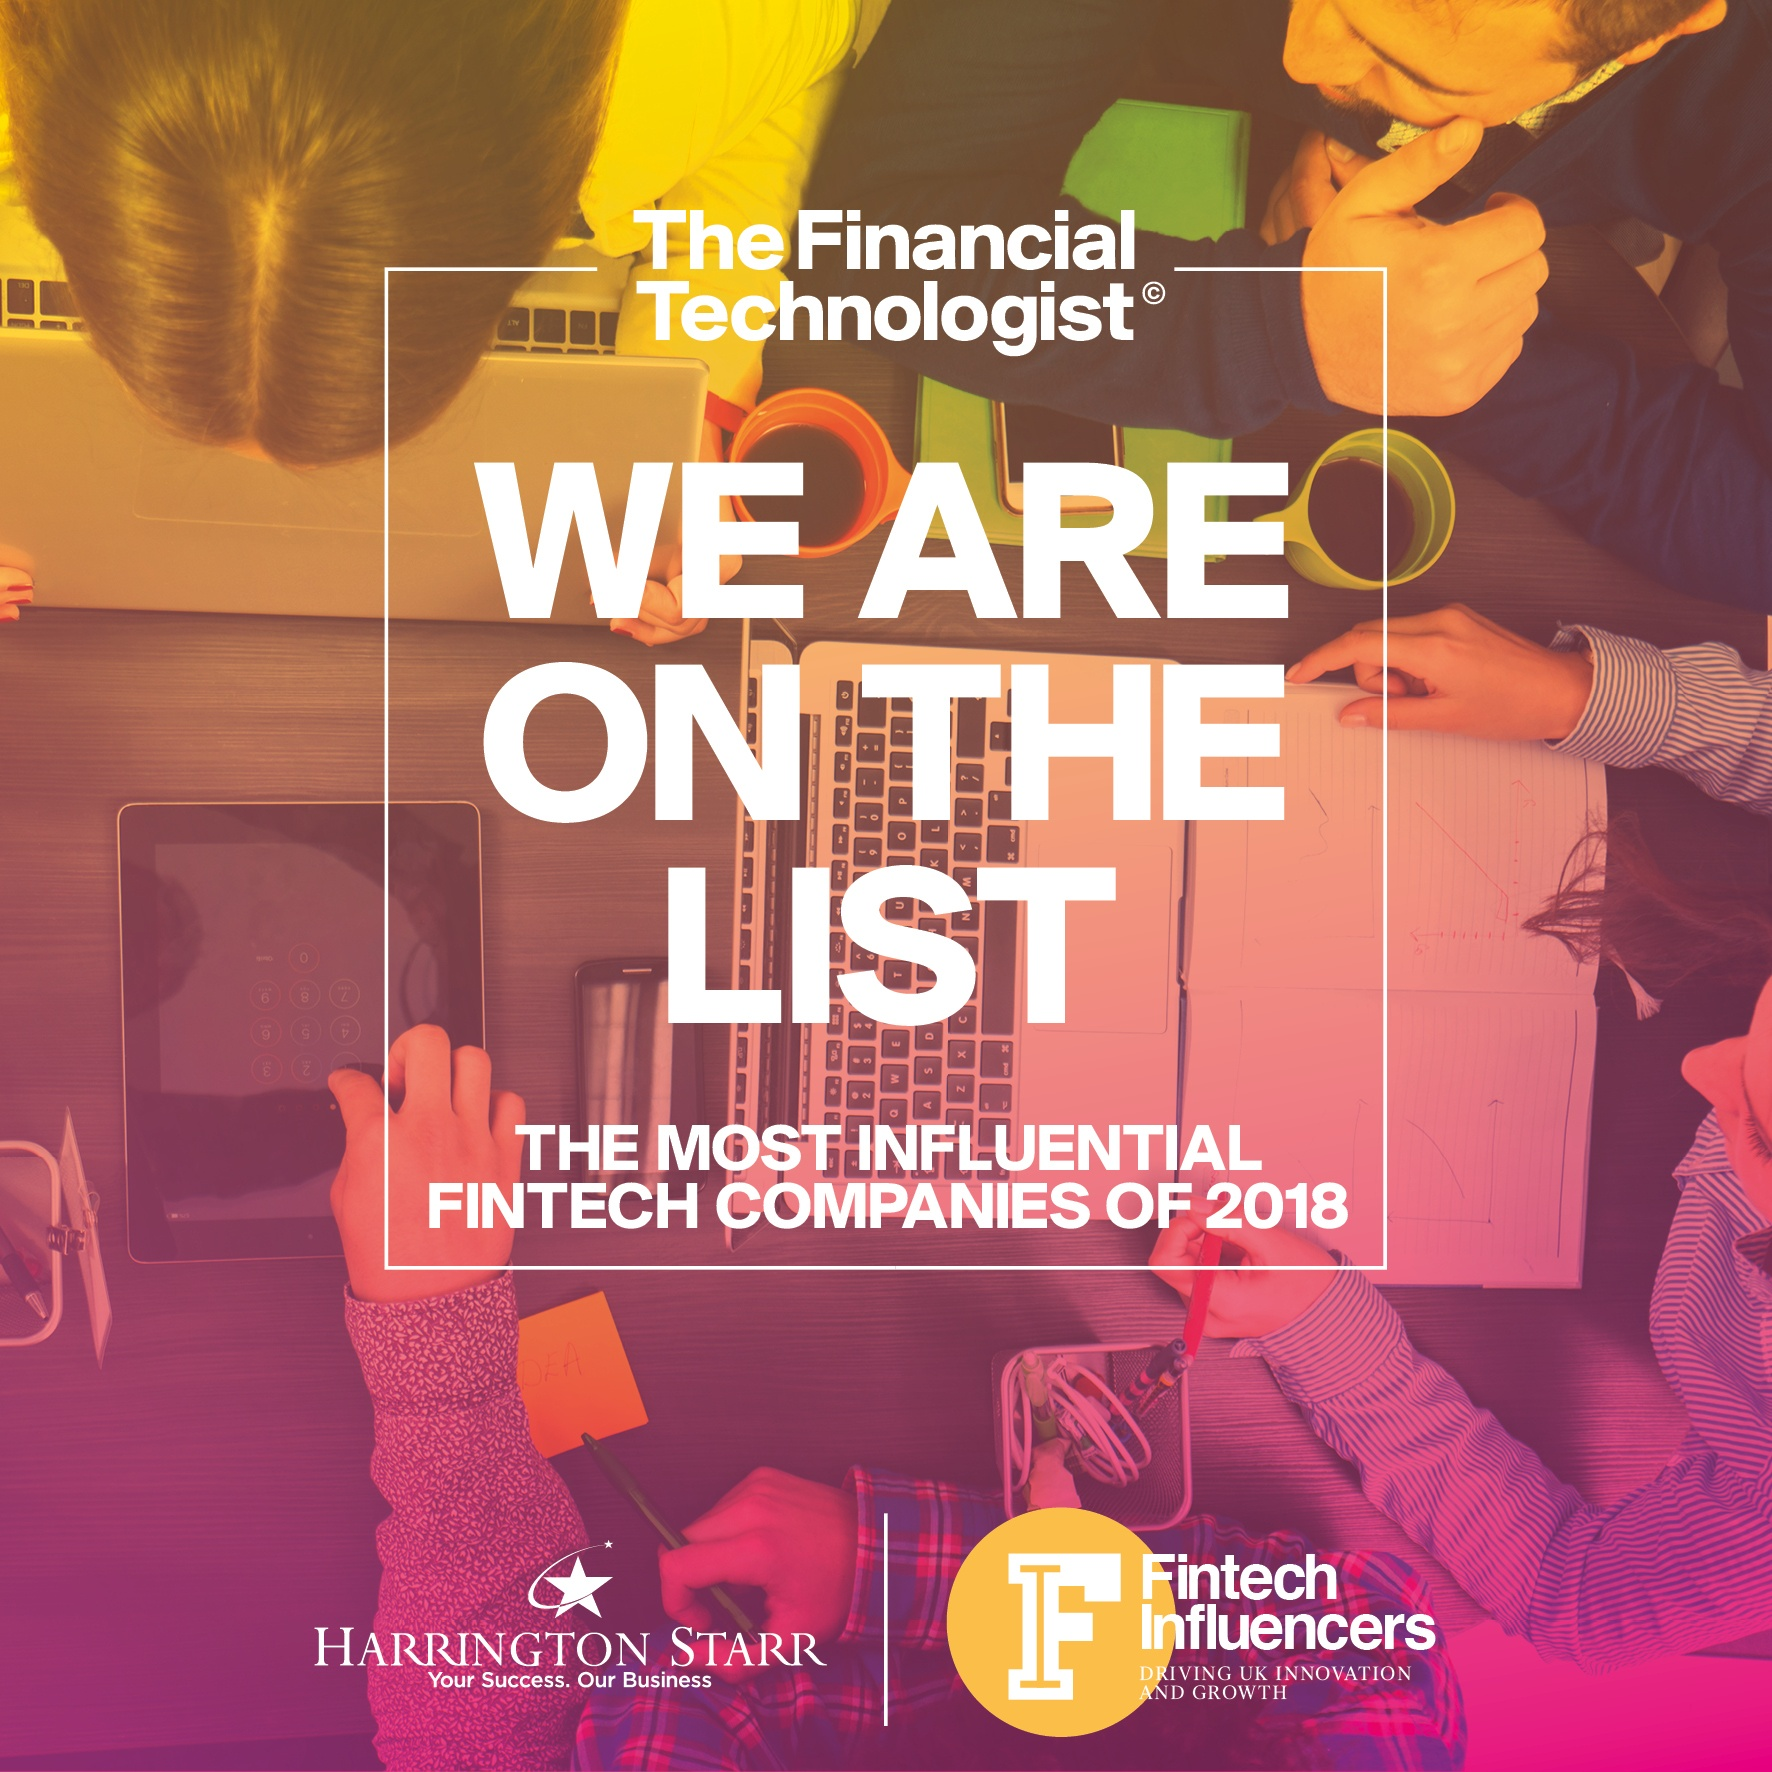 Harrington Starr's Definitive List of the 100 Most Influential FinTech Companies for 2018